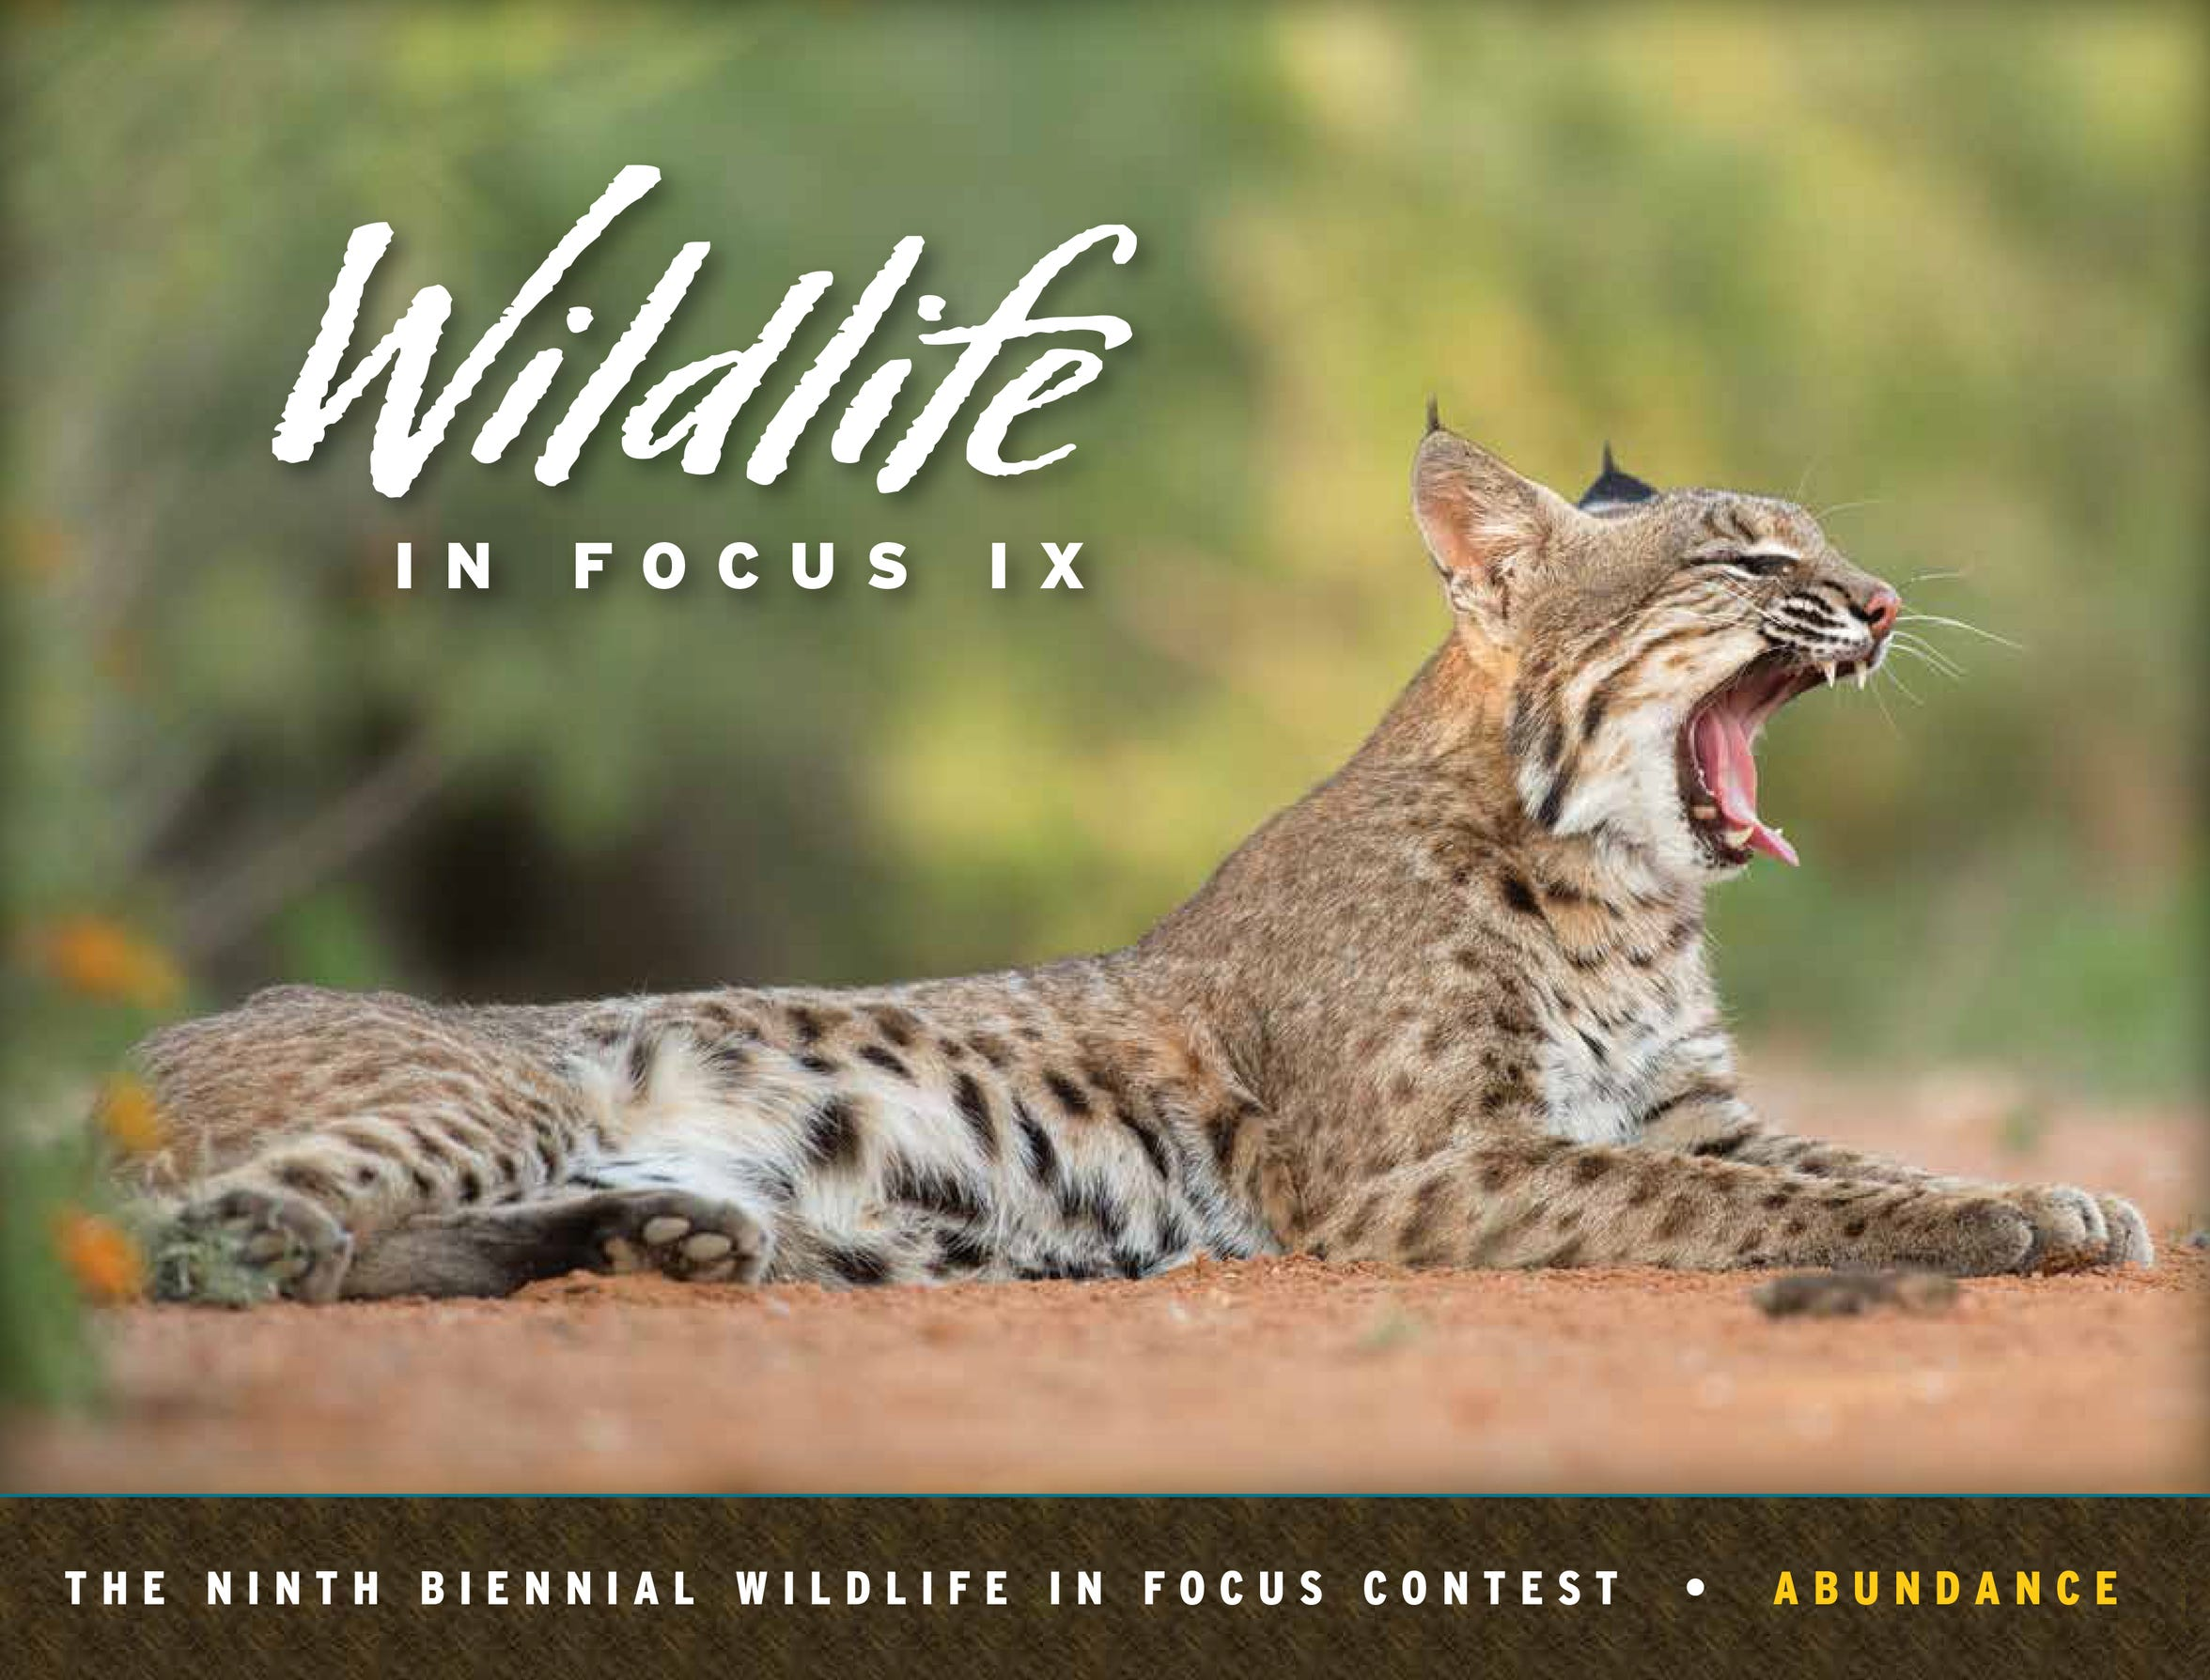 The Wildlife in Focus book series features award-winning images from South Texas ranches.